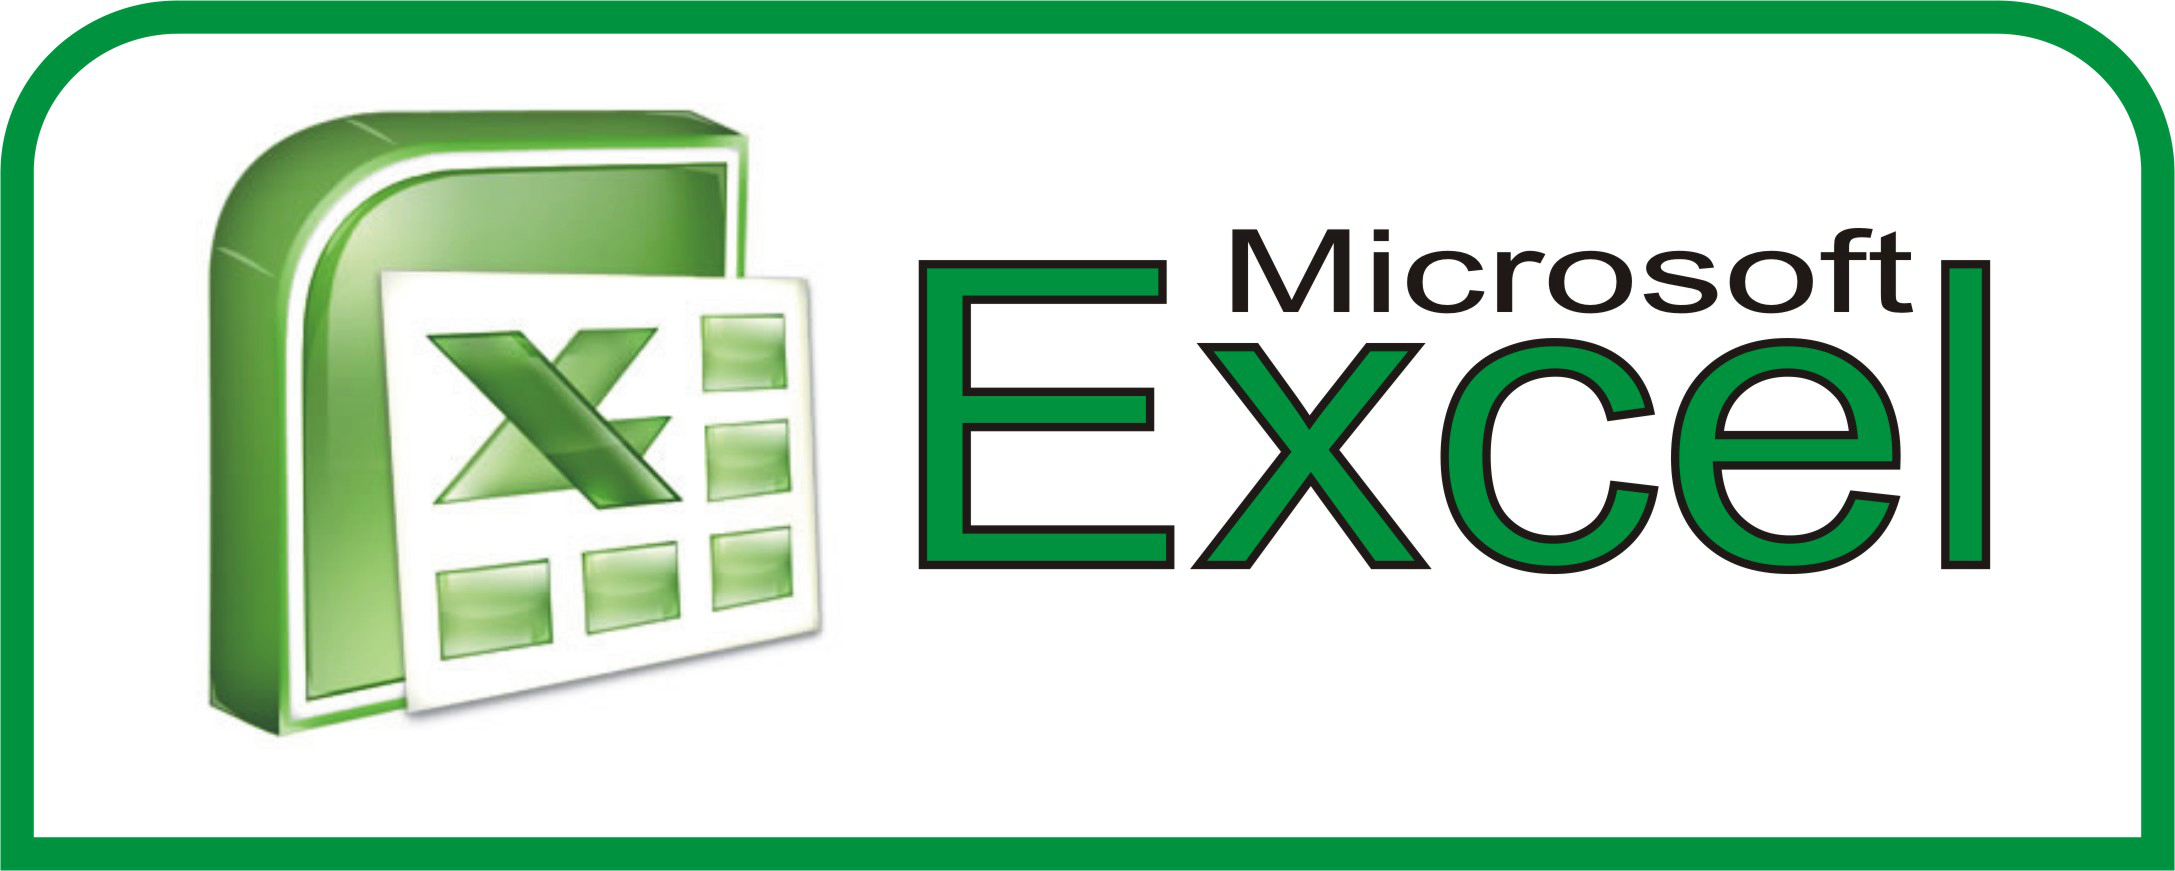 Ediblewildsus  Pleasant  Excel Shortcuts You Probably Didnt Know About  Techdissected With Goodlooking Add A Header In Excel Besides Excel Vba Borders Furthermore Fantasy Football Excel Cheat Sheet With Astonishing Range Name Excel Also Two Way Anova Excel In Addition Excel Xml Format And Excel Solver  As Well As Disable Macros In Excel Additionally Print Excel From Techdissectedcom With Ediblewildsus  Goodlooking  Excel Shortcuts You Probably Didnt Know About  Techdissected With Astonishing Add A Header In Excel Besides Excel Vba Borders Furthermore Fantasy Football Excel Cheat Sheet And Pleasant Range Name Excel Also Two Way Anova Excel In Addition Excel Xml Format From Techdissectedcom